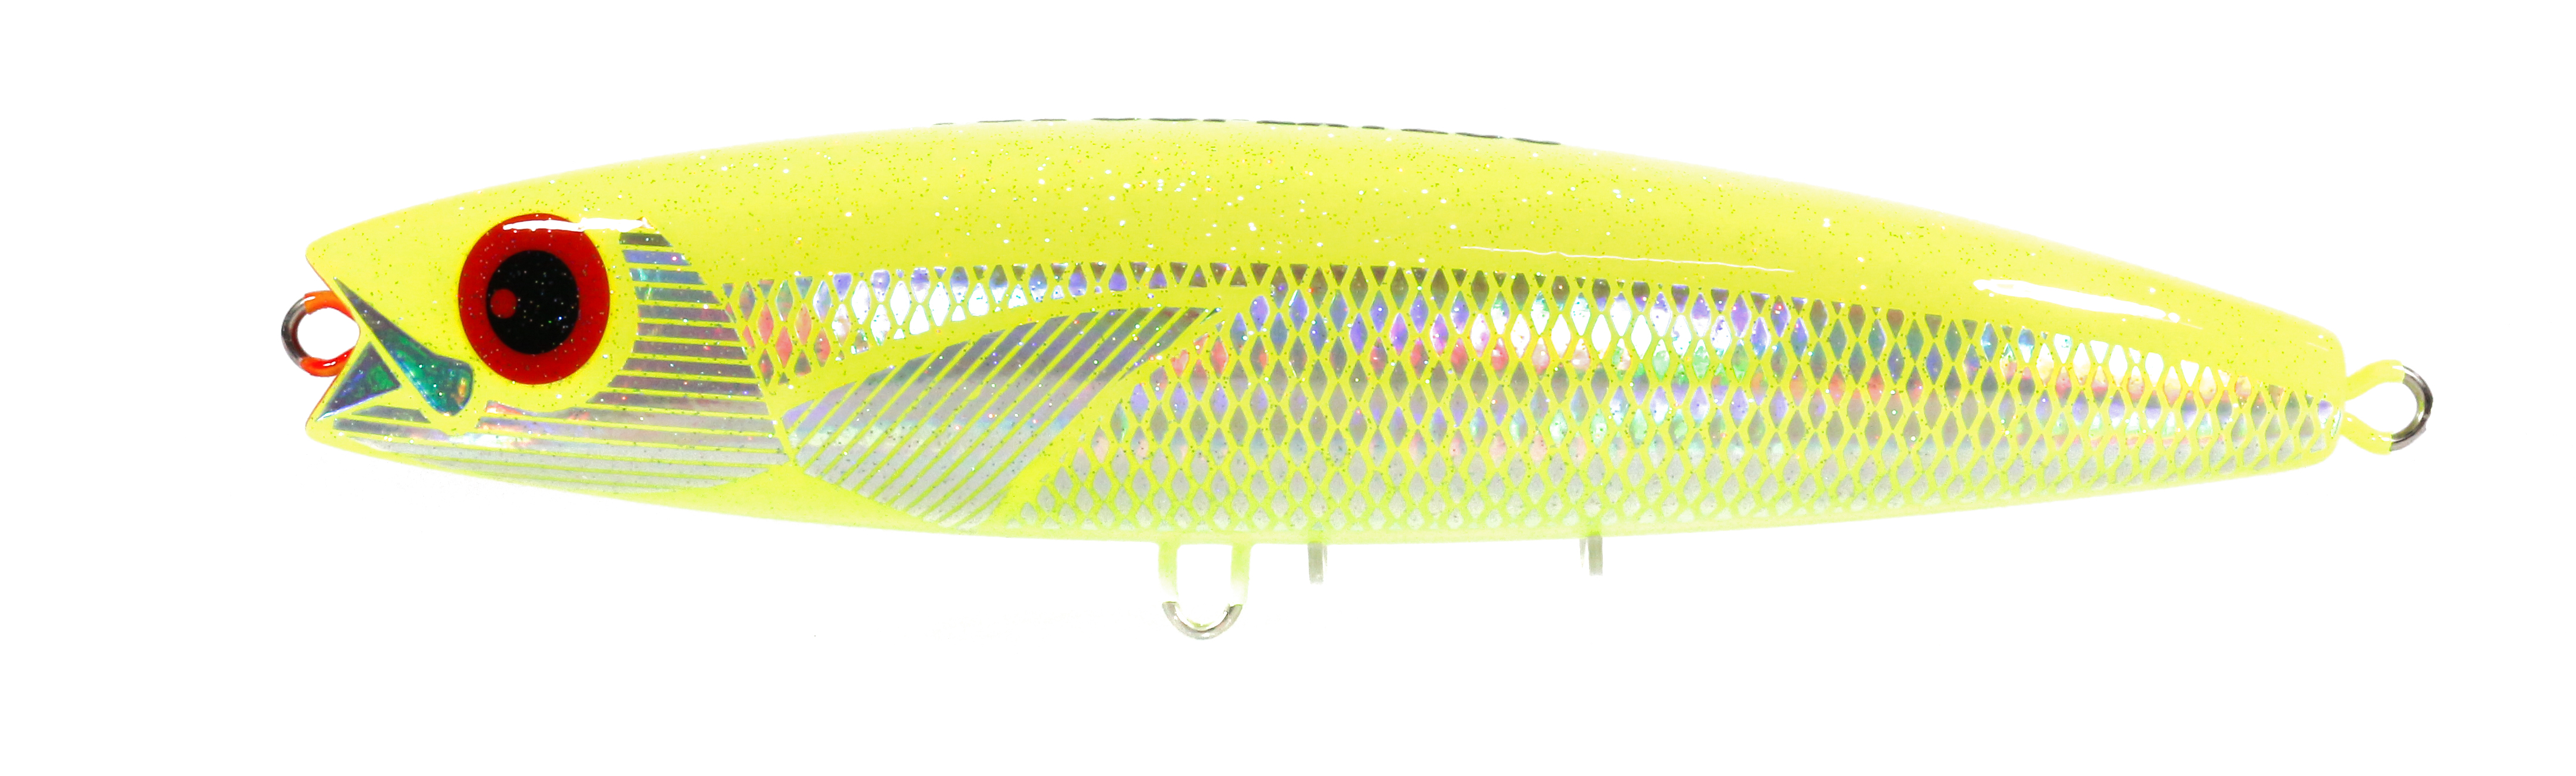 FCL Labo Stick Bait CSP EXT 230F Floating Lure 165 grams ACH (9097)